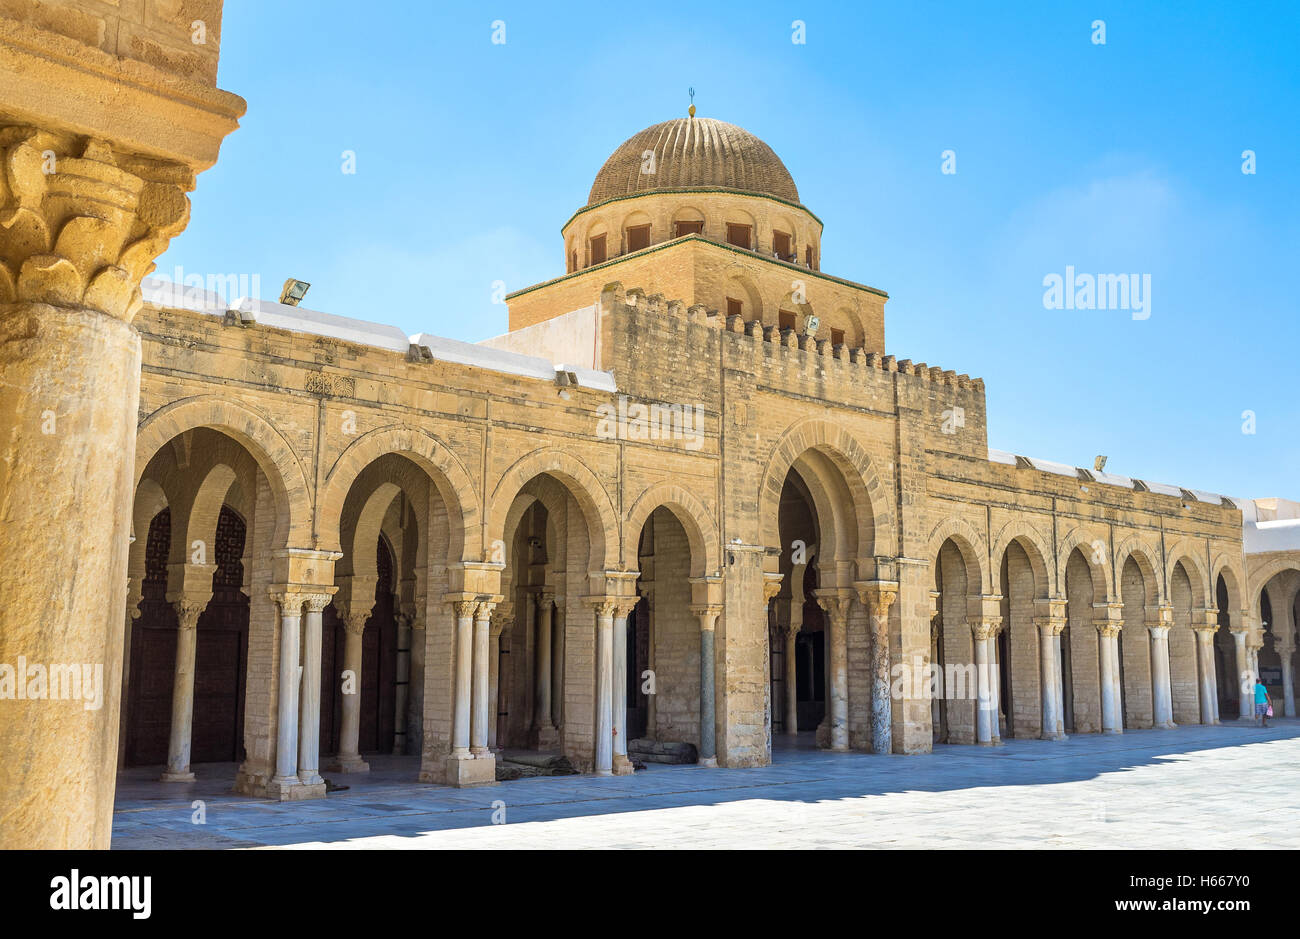 The main entrance to the prayer hall of the Great Mosque decorated with many antique columns - Stock Image